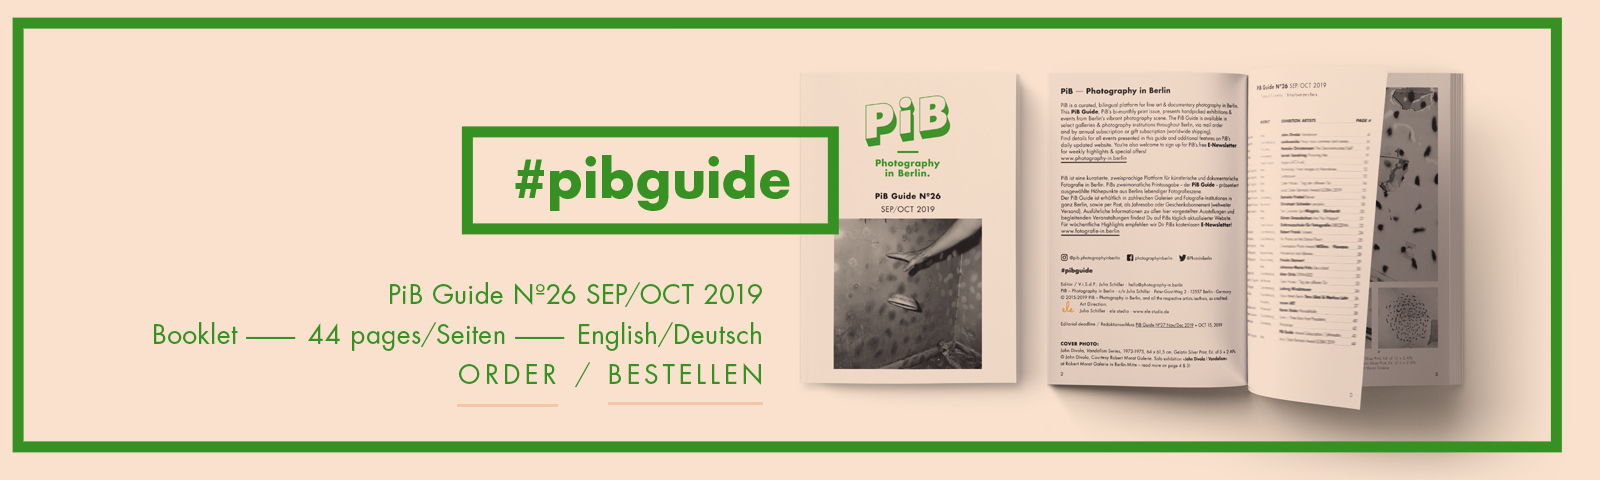 The PiB Guide Nº26 SEP/OCT 2019 © PiB – Photography In Berlin. #pibguide. COVER PHOTO: John Divola, Vandalism Series, 1973-1975, 64 X 61,5 Cm, Gelatin Silver Print, Ed. Of 5 + 2 APs © John Divola, Courtesy Robert Morat Galerie. Solo Exhibition »John Divola | Vandalism« At Robert Morat Galerie In Berlin-Mitte.